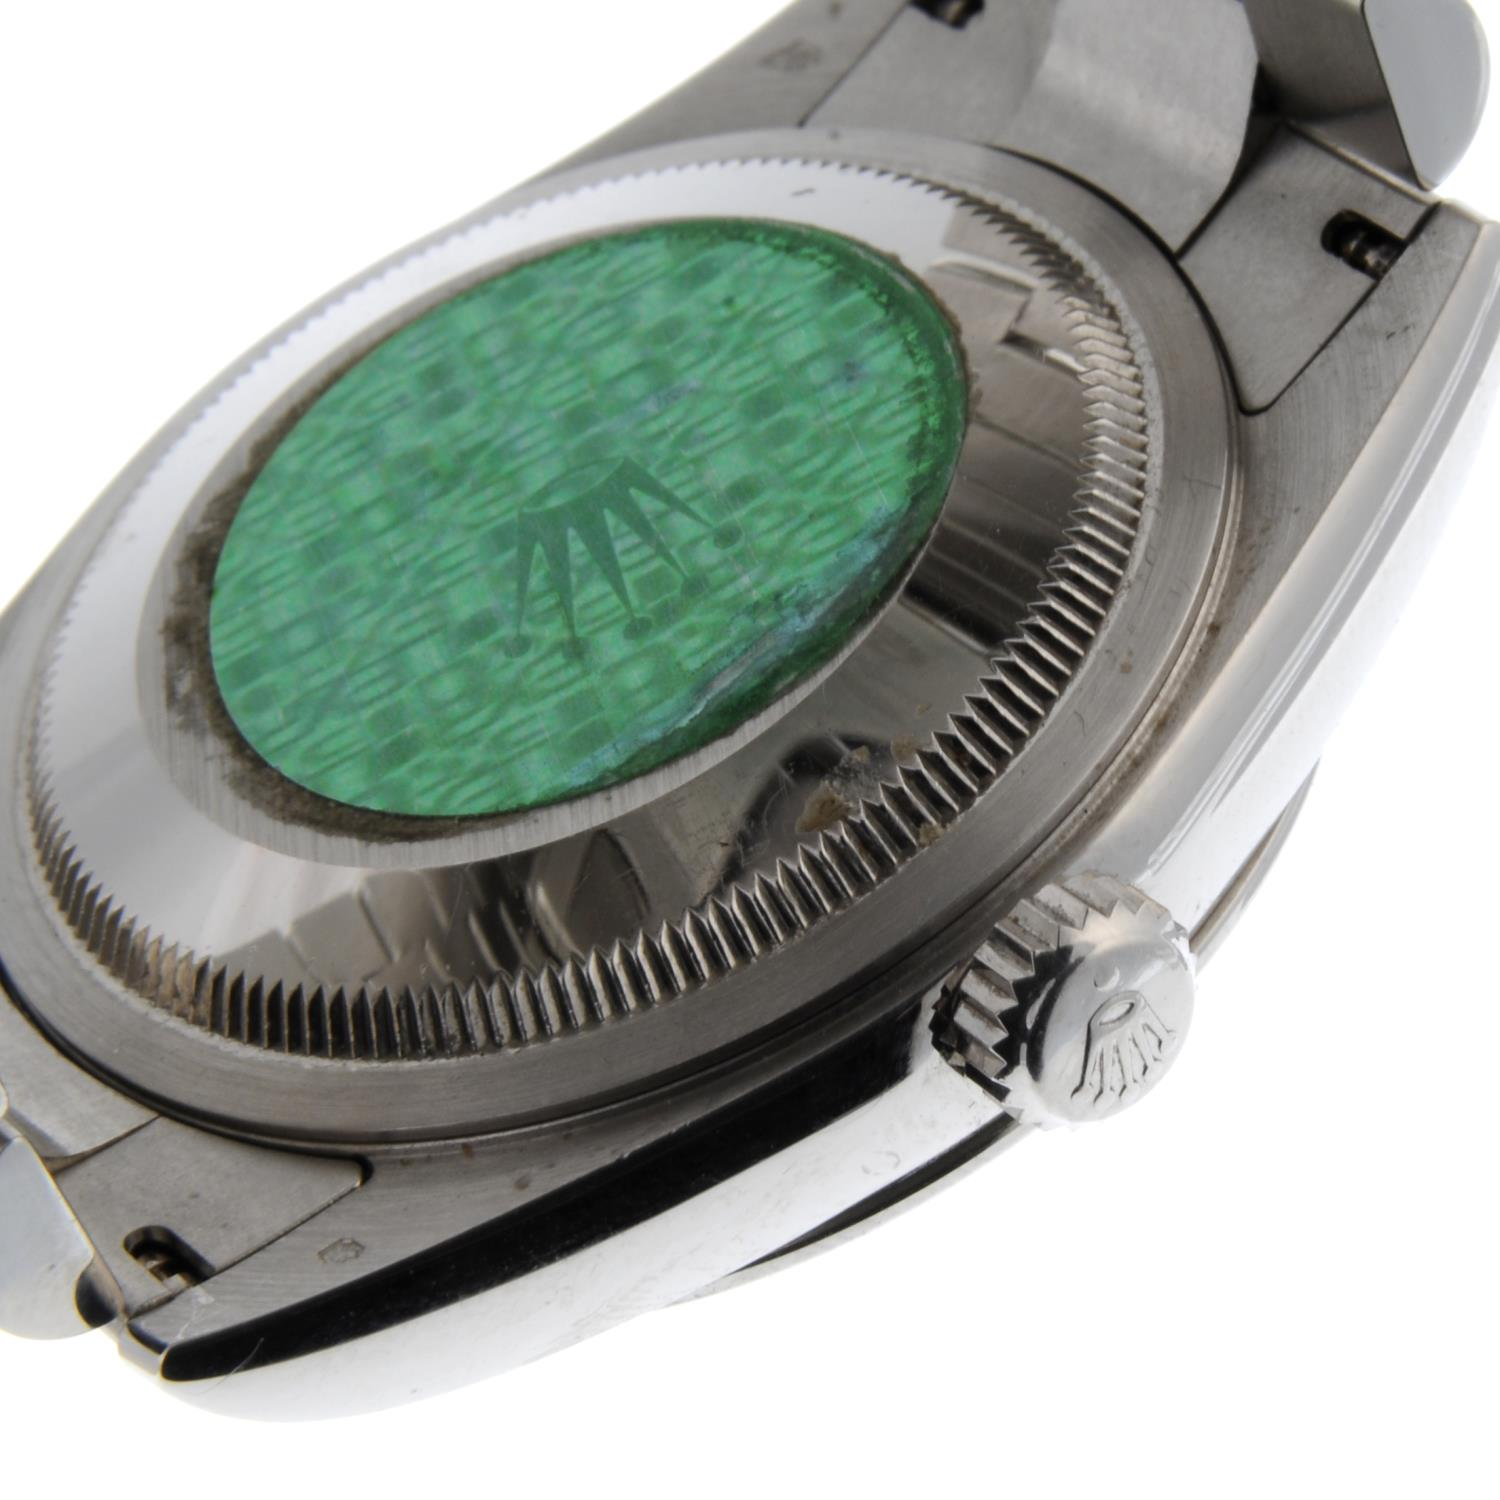 ROLEX - an Oyster Perpetual Day-Date bracelet watch. - Image 2 of 5